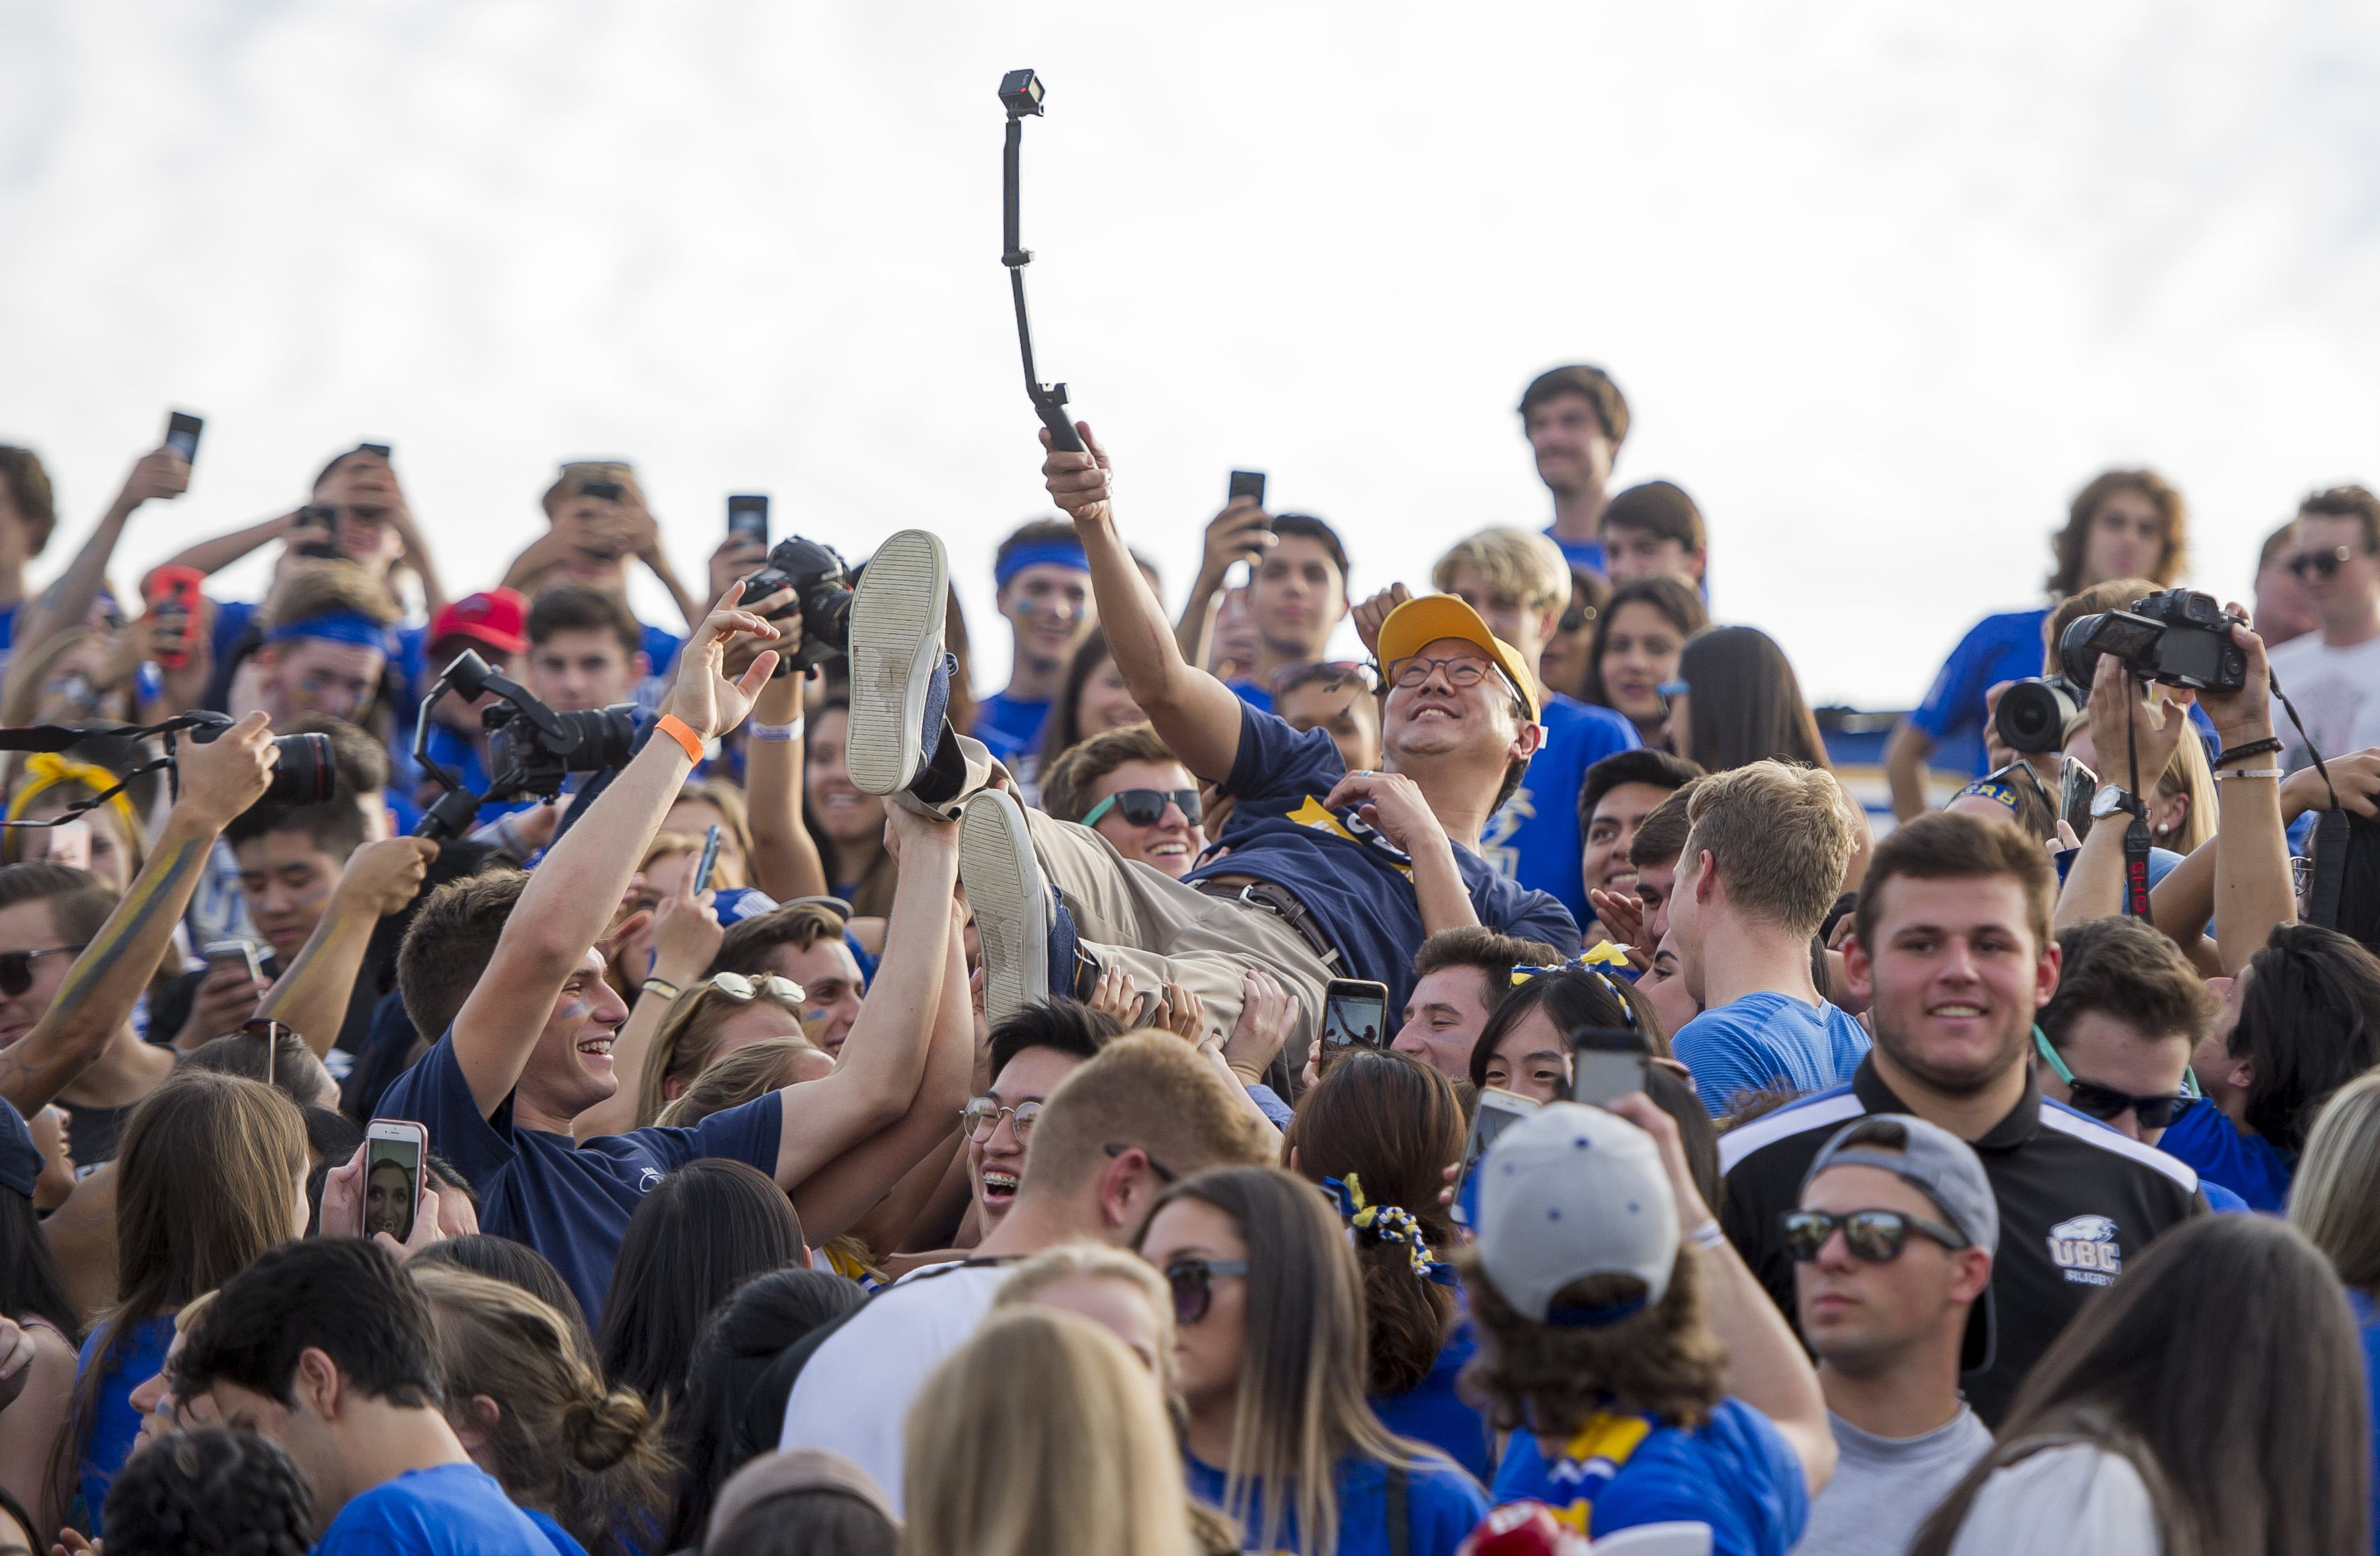 UBC's awesome president goes crowd surfing at football game (PHOTOS)